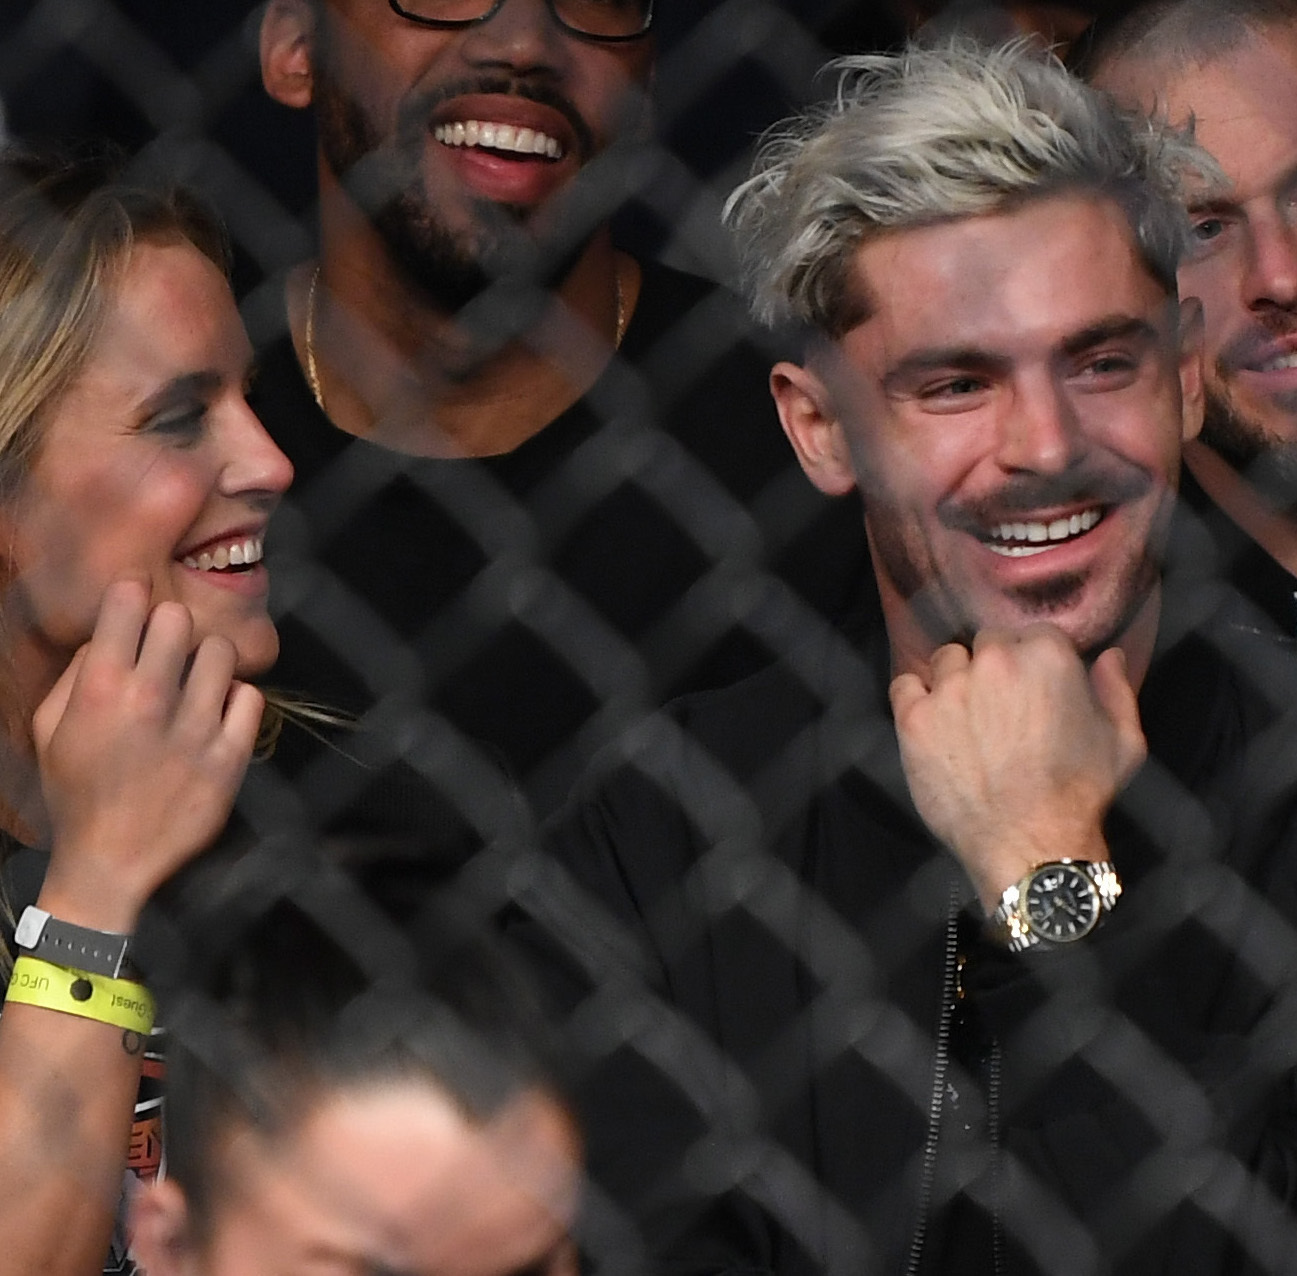 Zac Efron and Olympic swimmer Sarah Bro fuel romance rumors at UFC fight